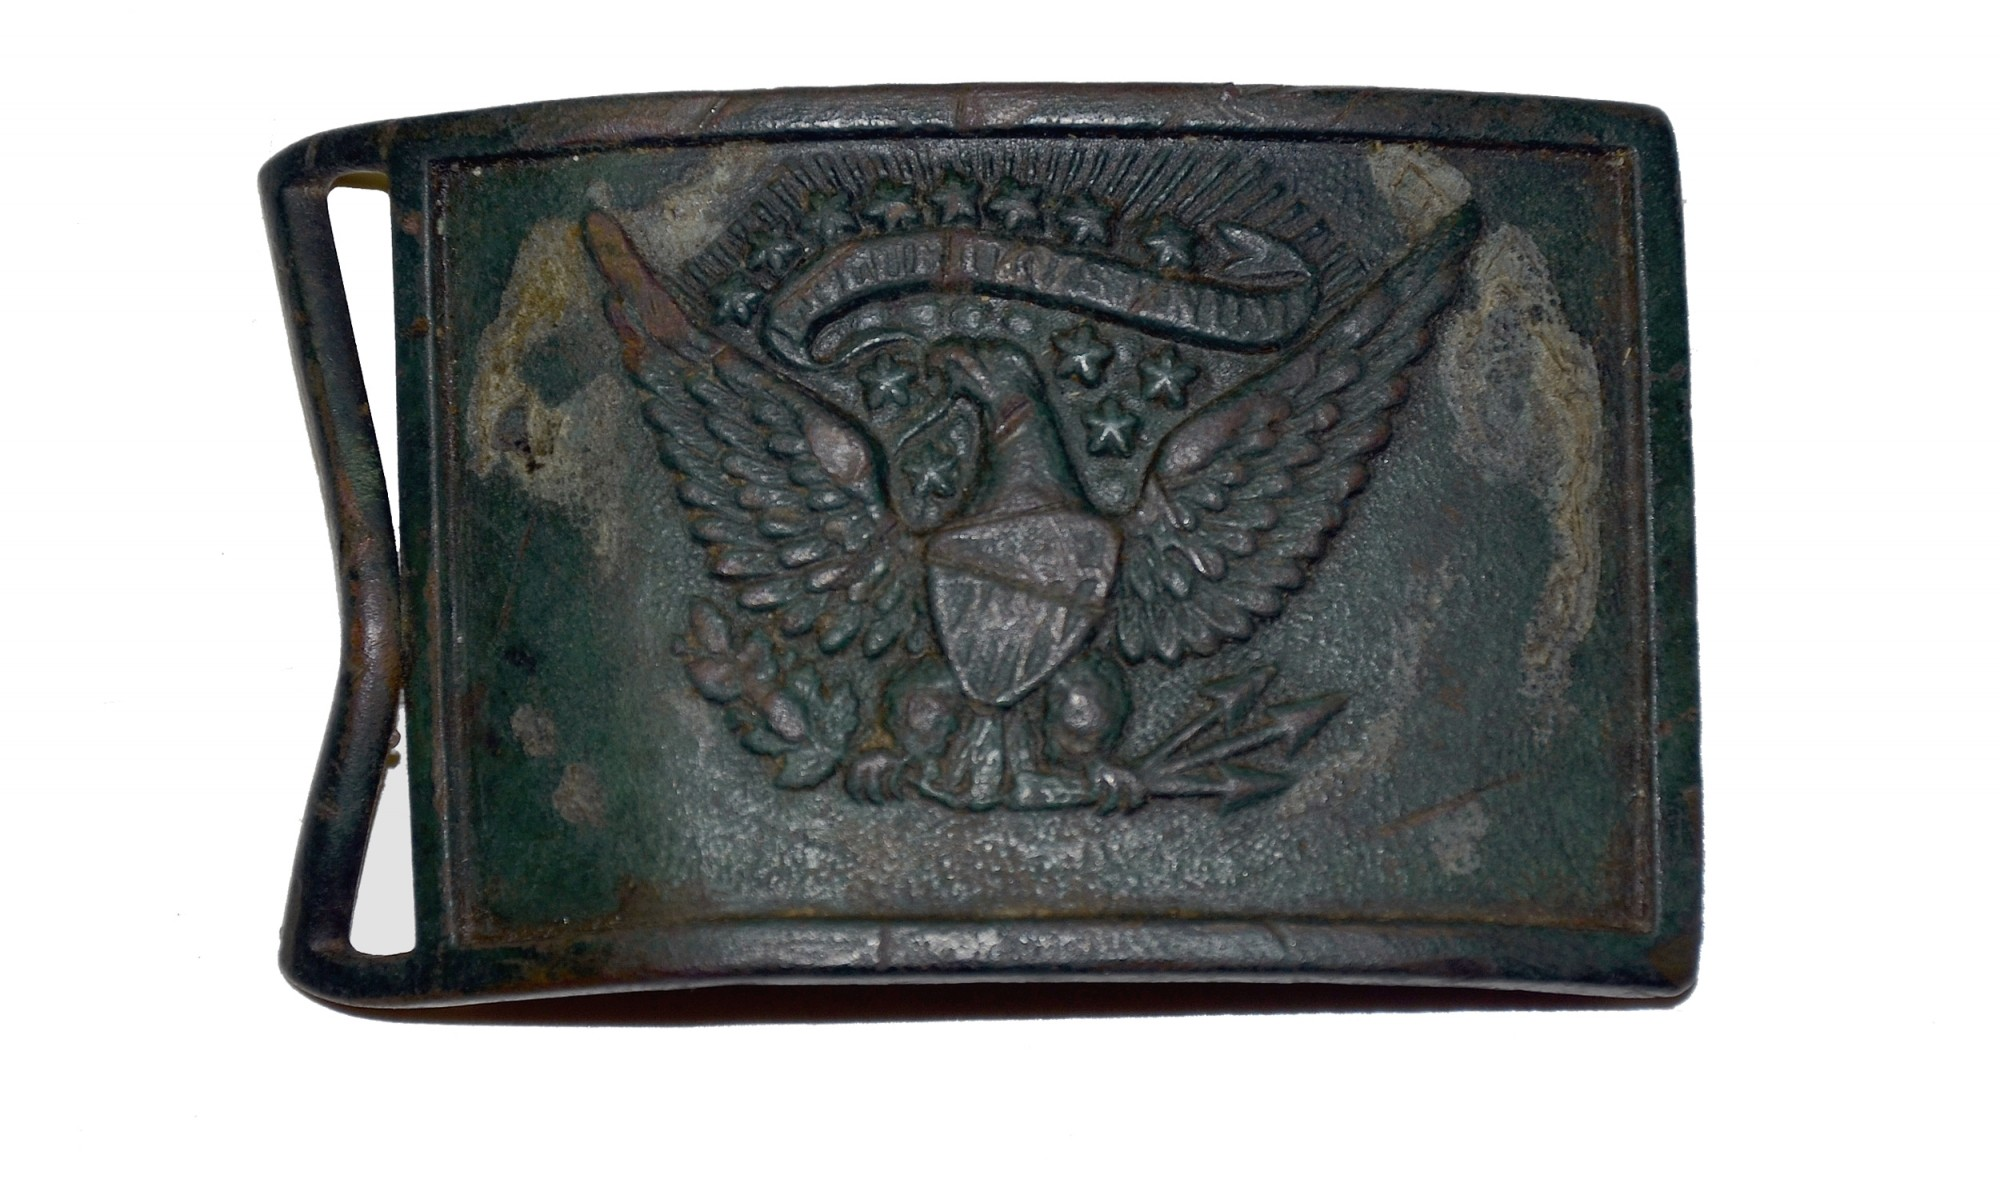 PATTERN 1851 EAGLE SWORD PLATE FROM MANASSAS